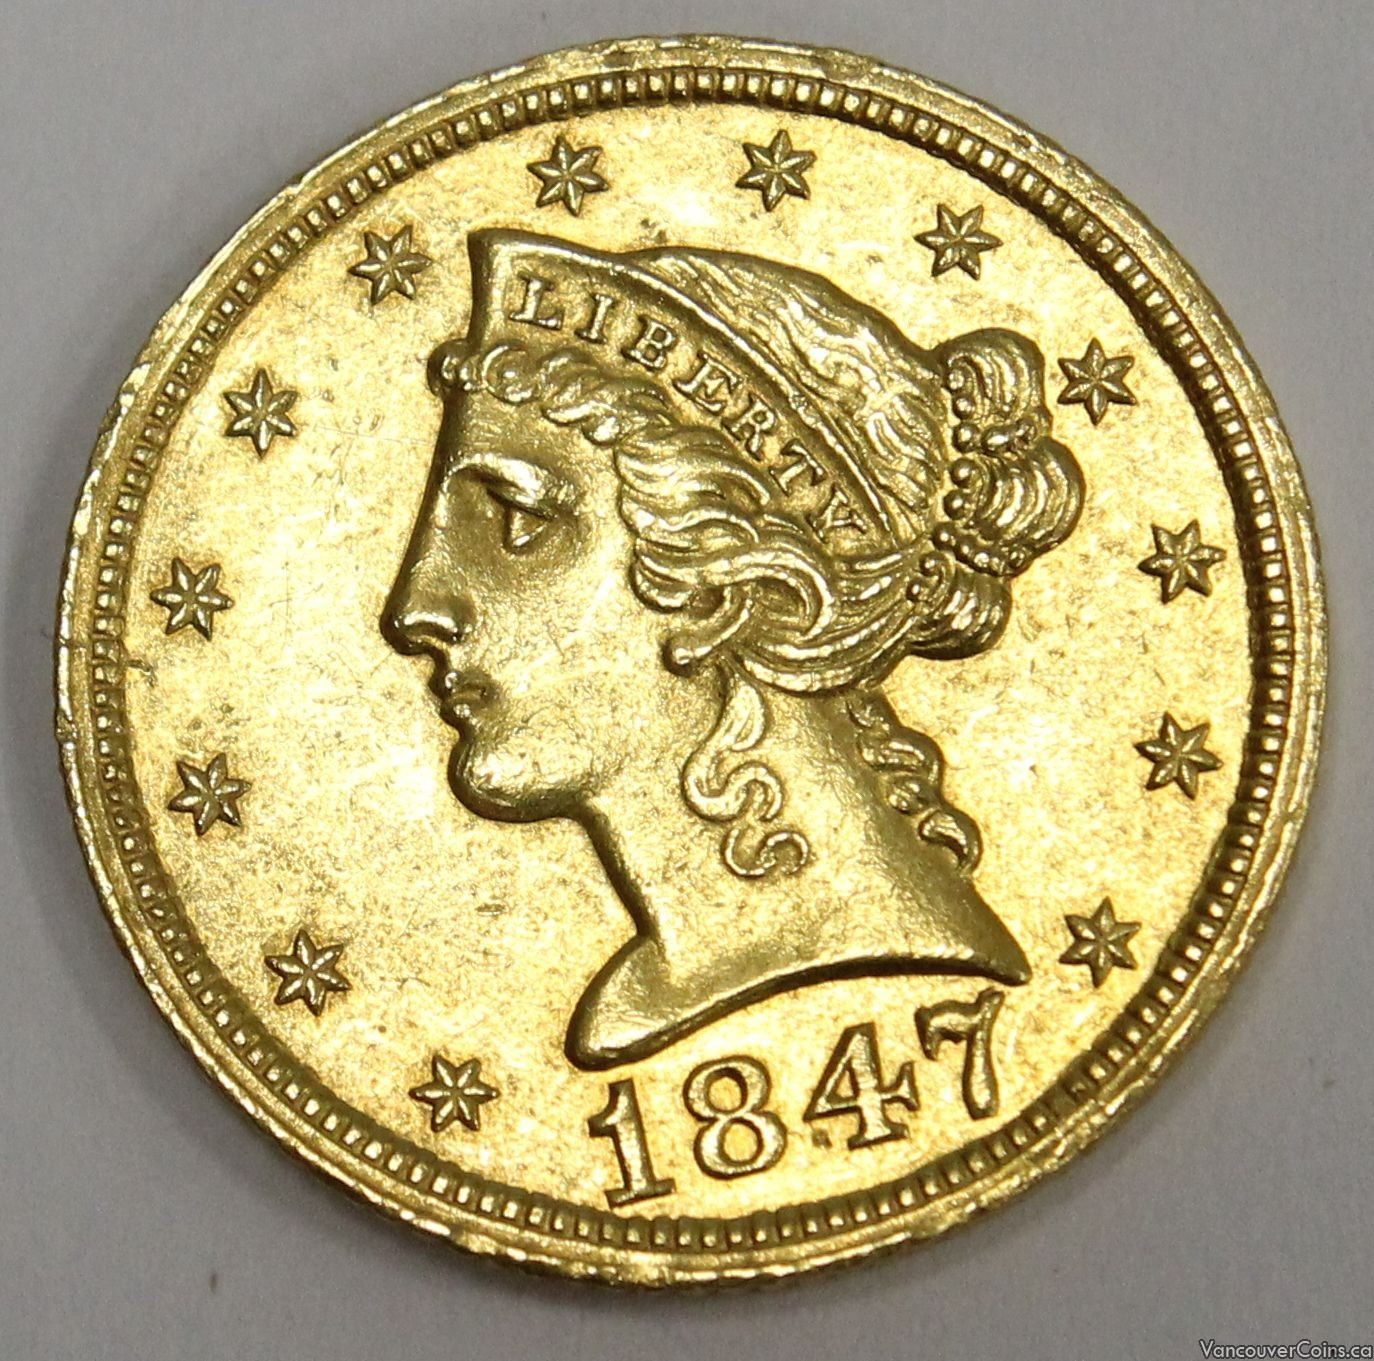 1847 $5 Liberty head gold half eagle coin AU50